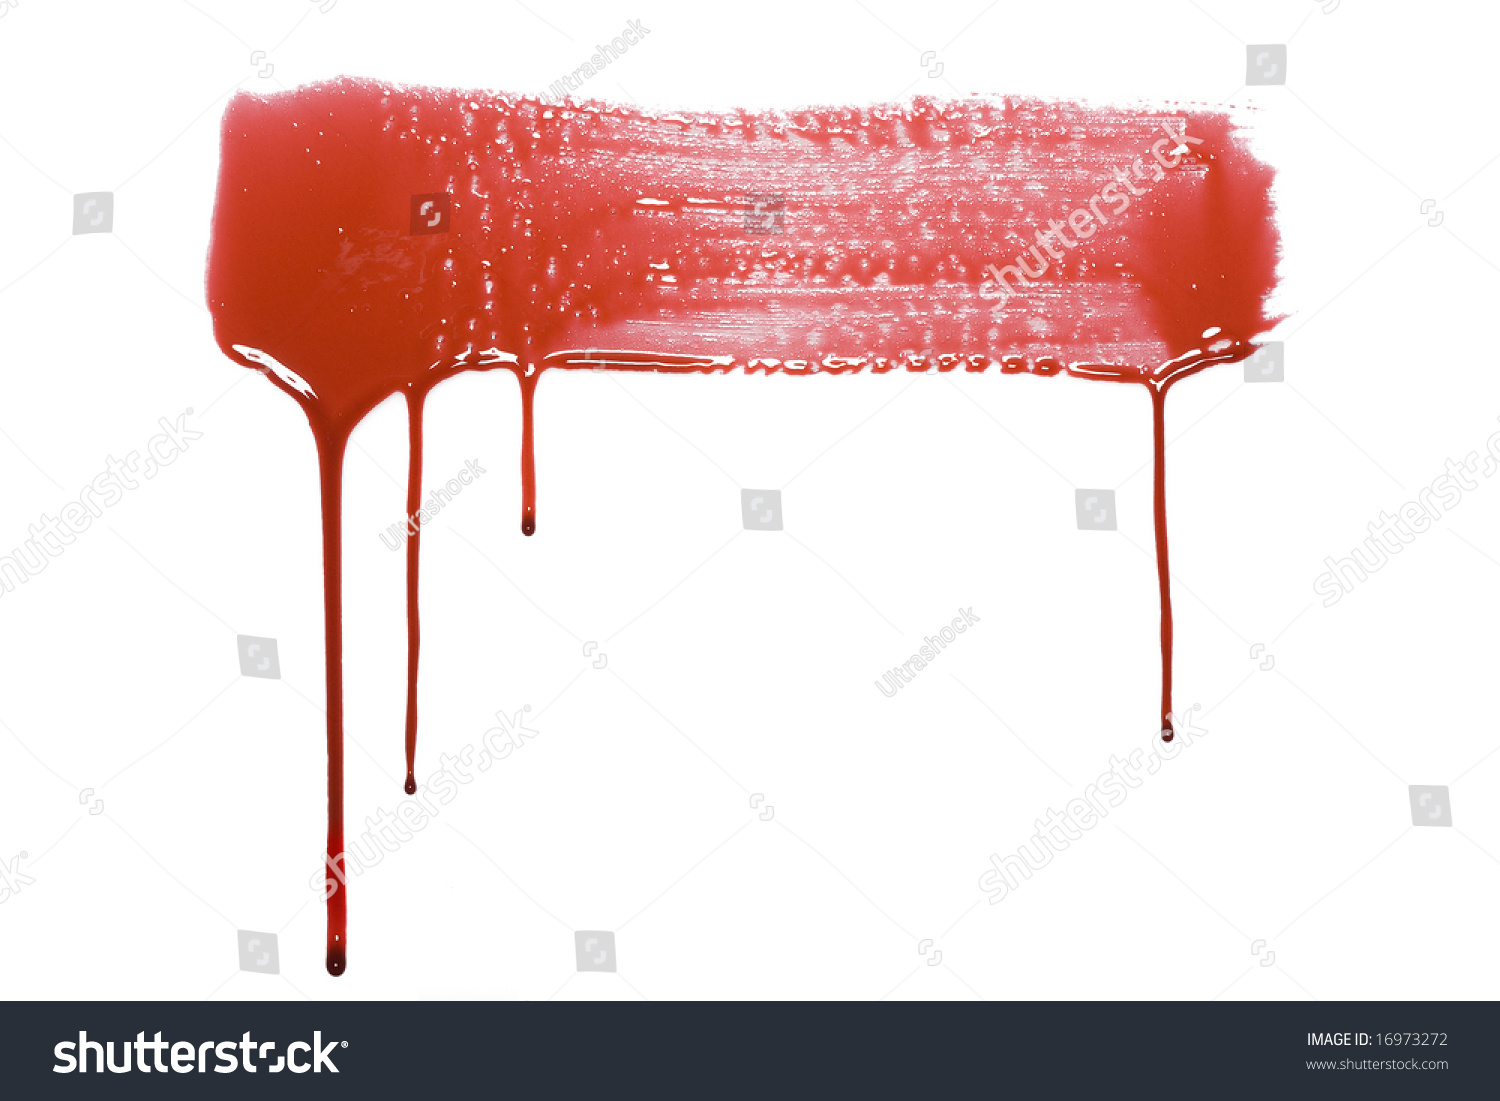 blood drip pattern isolated on a white background stock